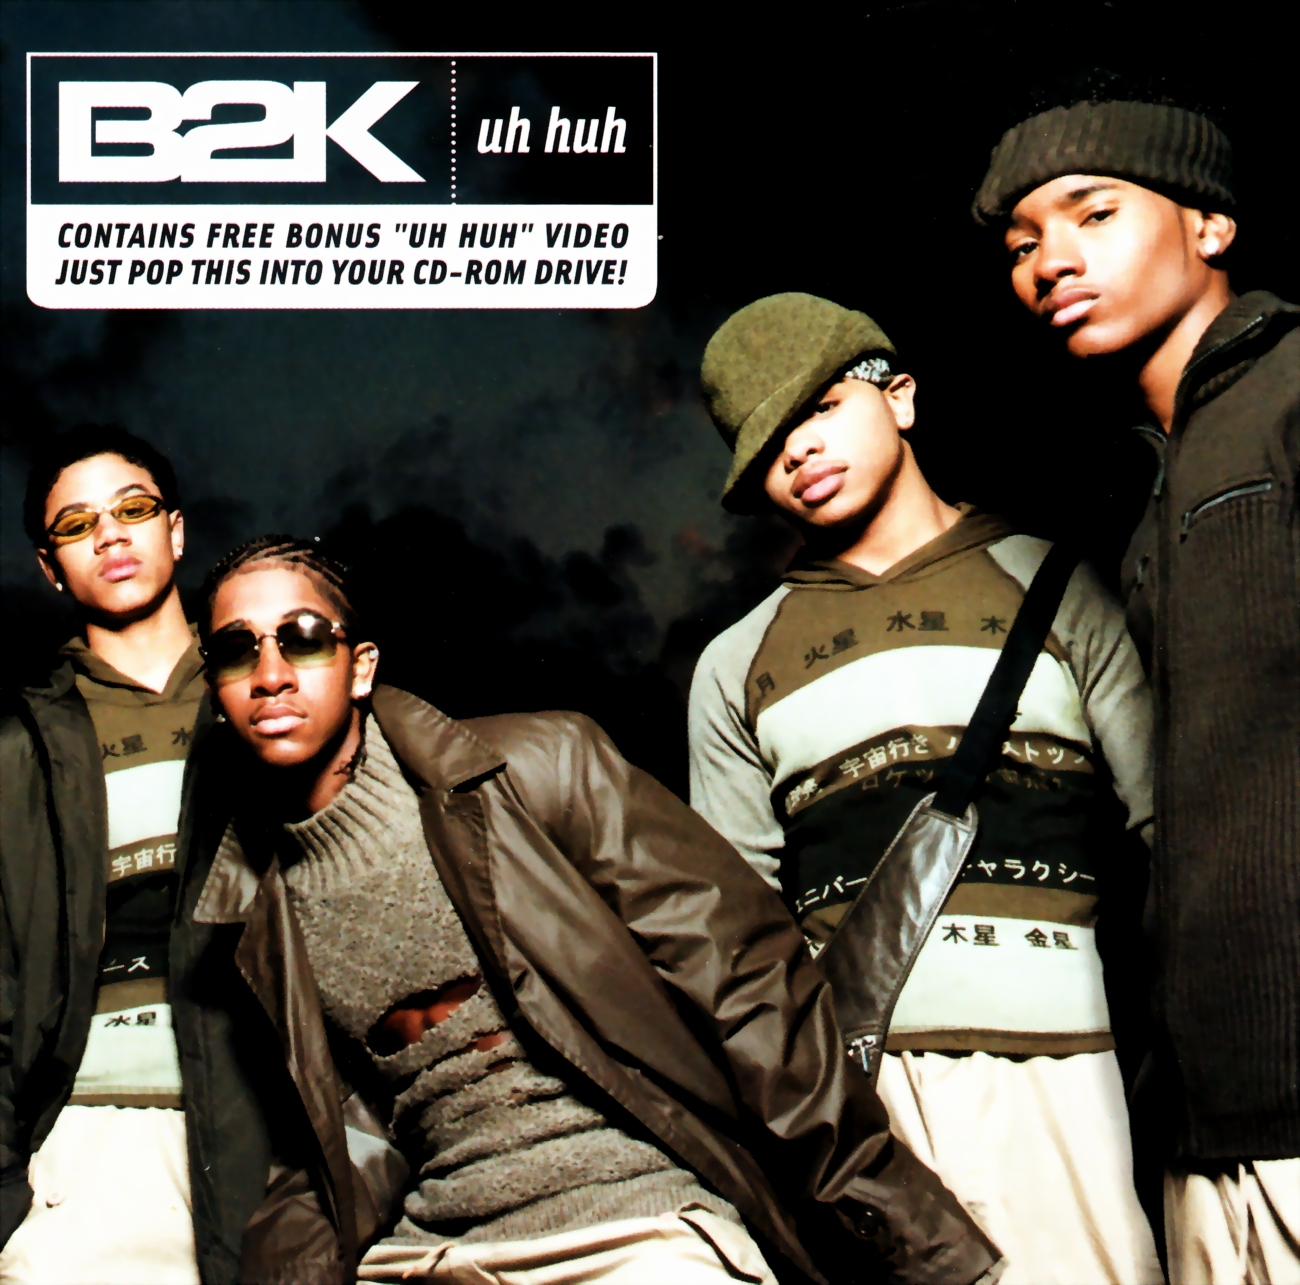 highest level of music: B2K Feat. Nazkar - Uh Huh-CDS-2001 B2k